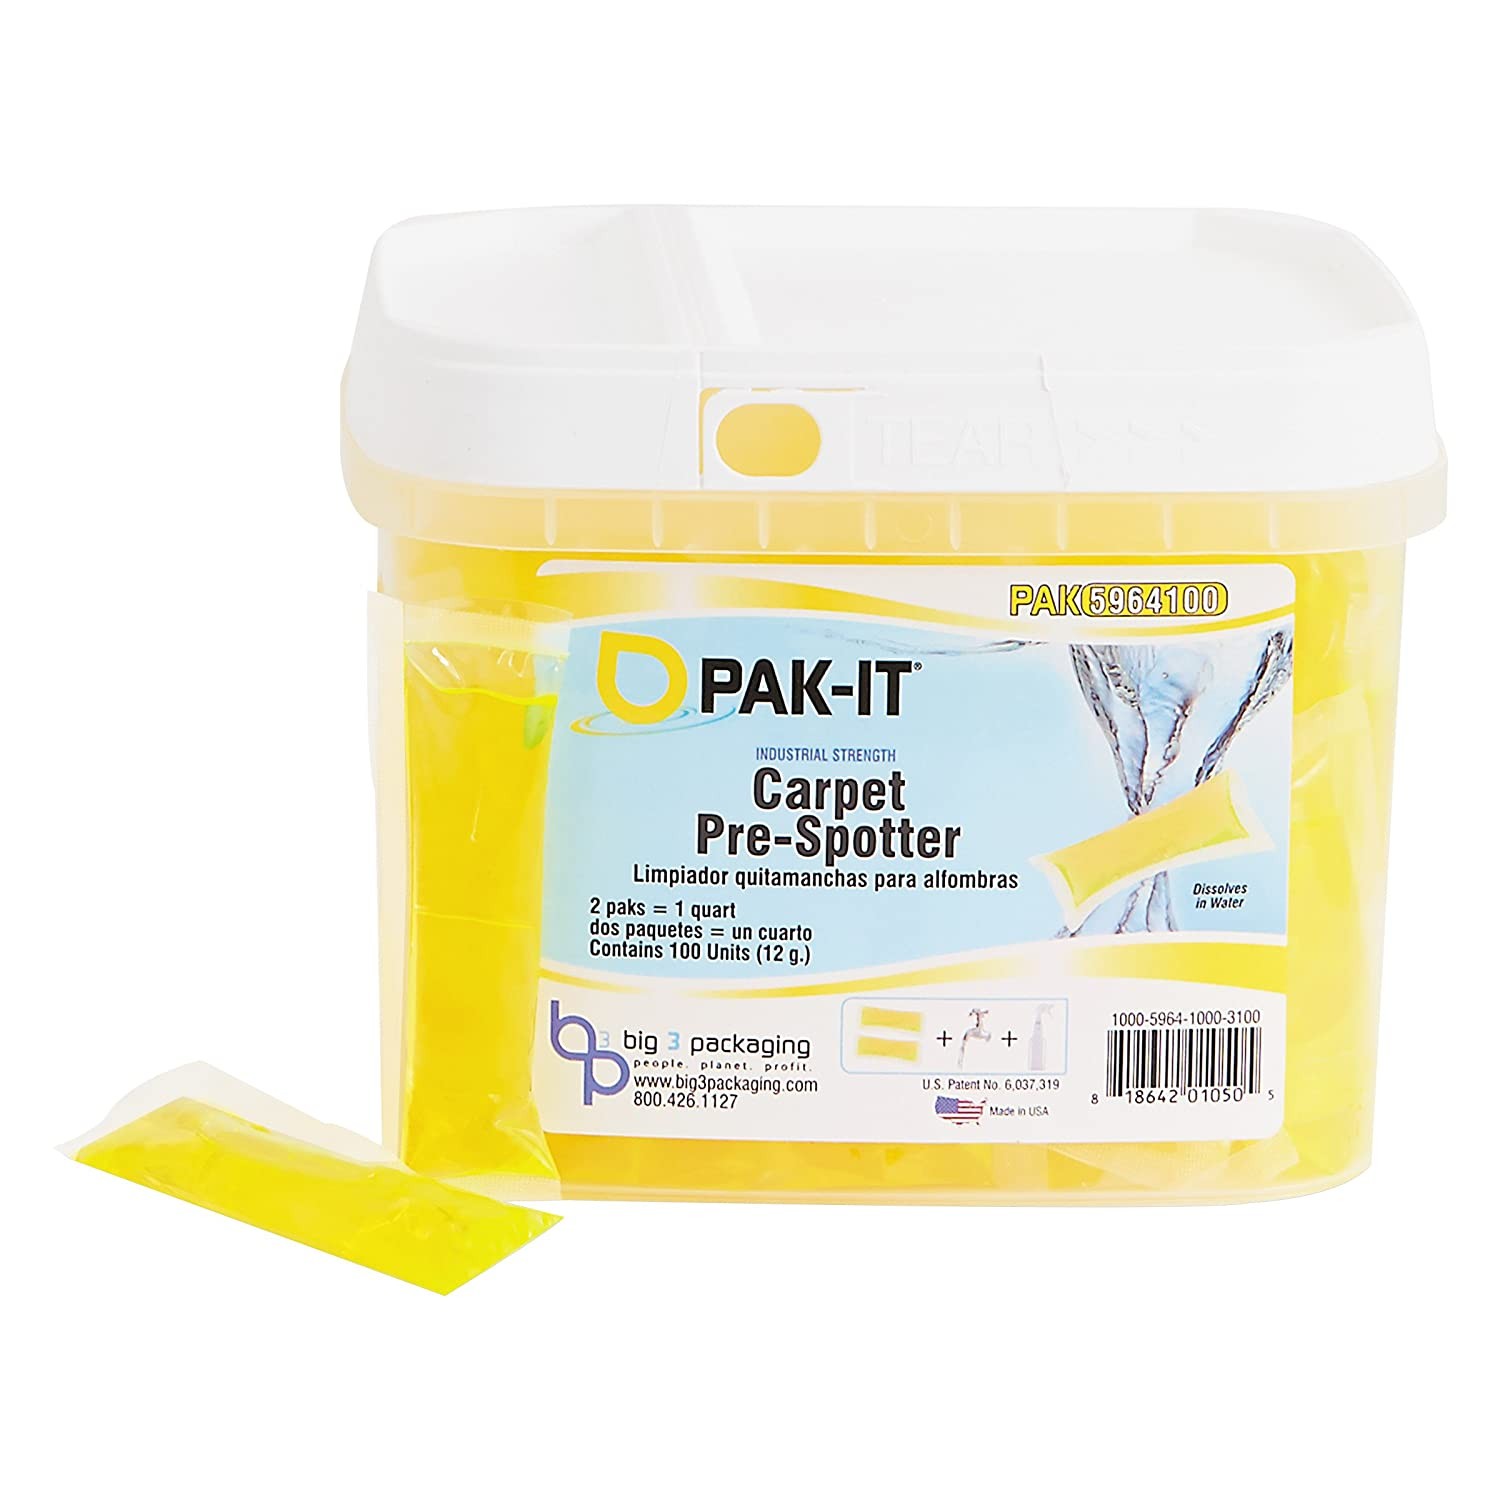 Amazon.com: PAK-IT 596420003400 Carpet Pre-Spotter, Citrus Scent, 100 PAK-ITs/Tub: Industrial & Scientific